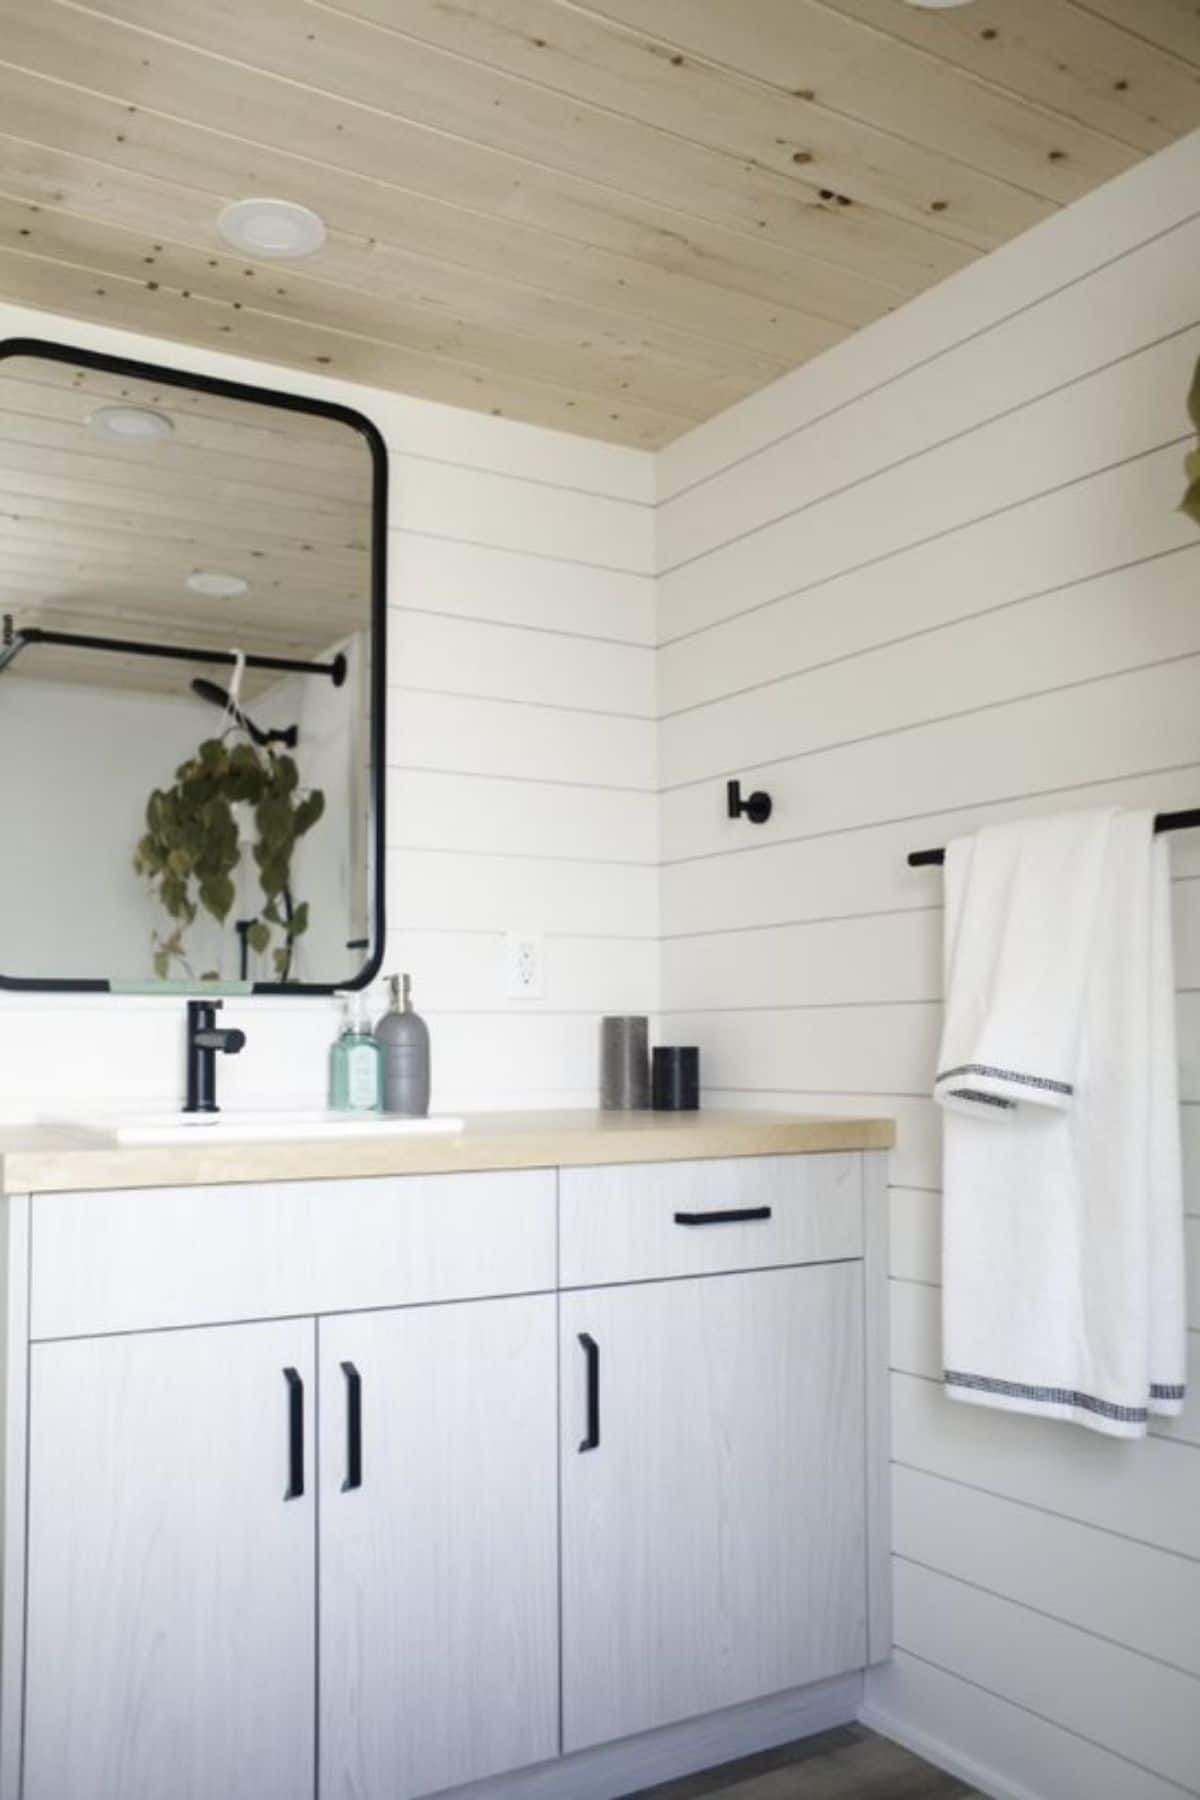 Bathroom with white shiplap walls and white vanity beneath mirror with black trim